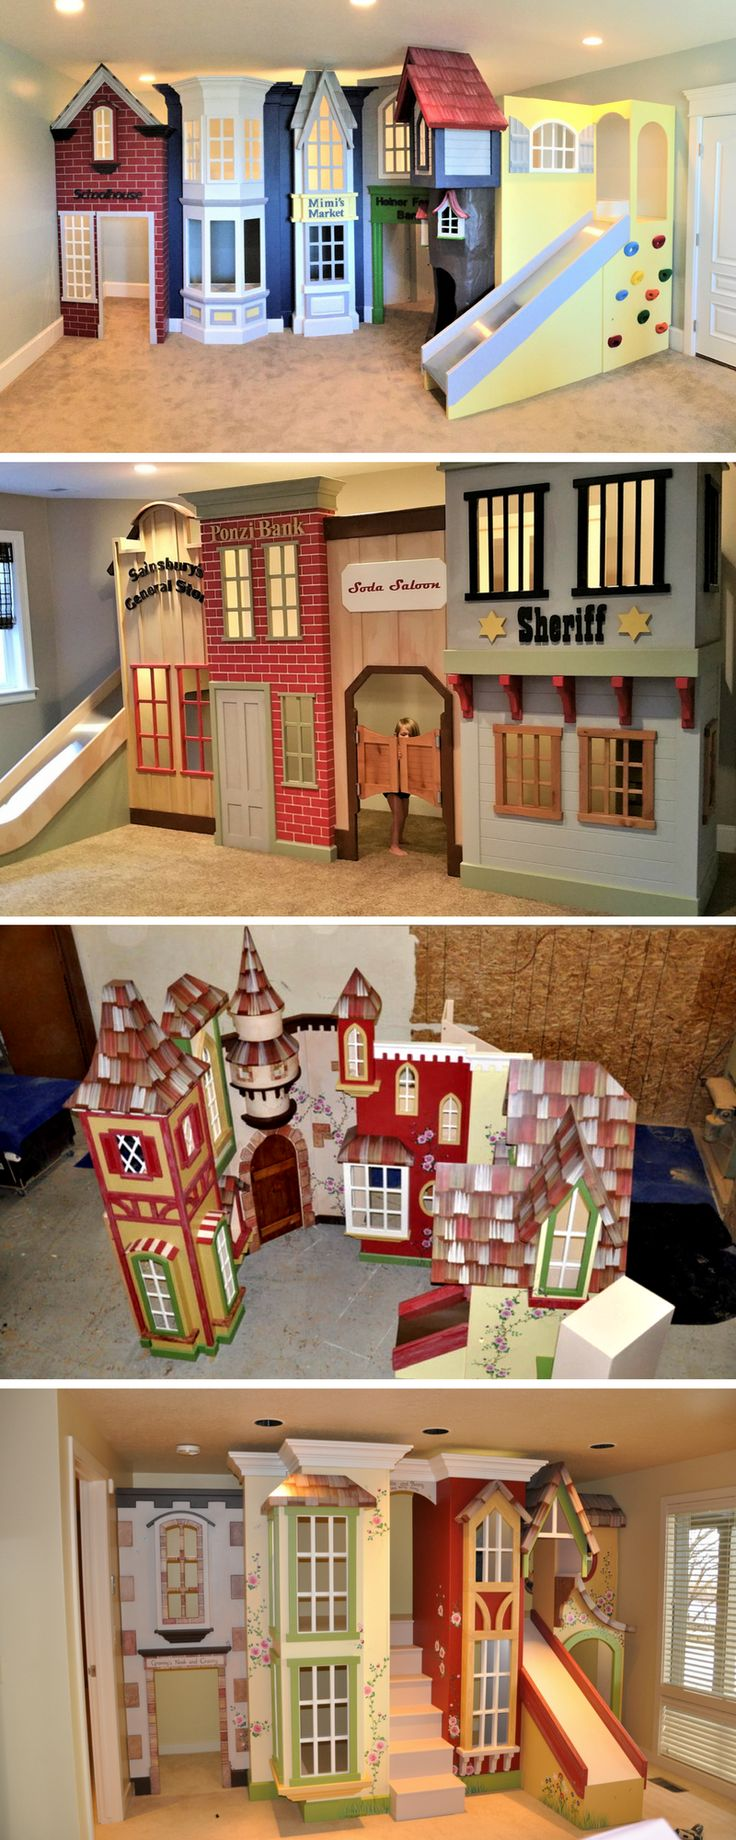 What child wouldn't love running around in their own indoor playhouse, especially if that was a village or Storefront Playhouse. At Tanglewood Design we have the best kid town designs around. Click to see our full selection.